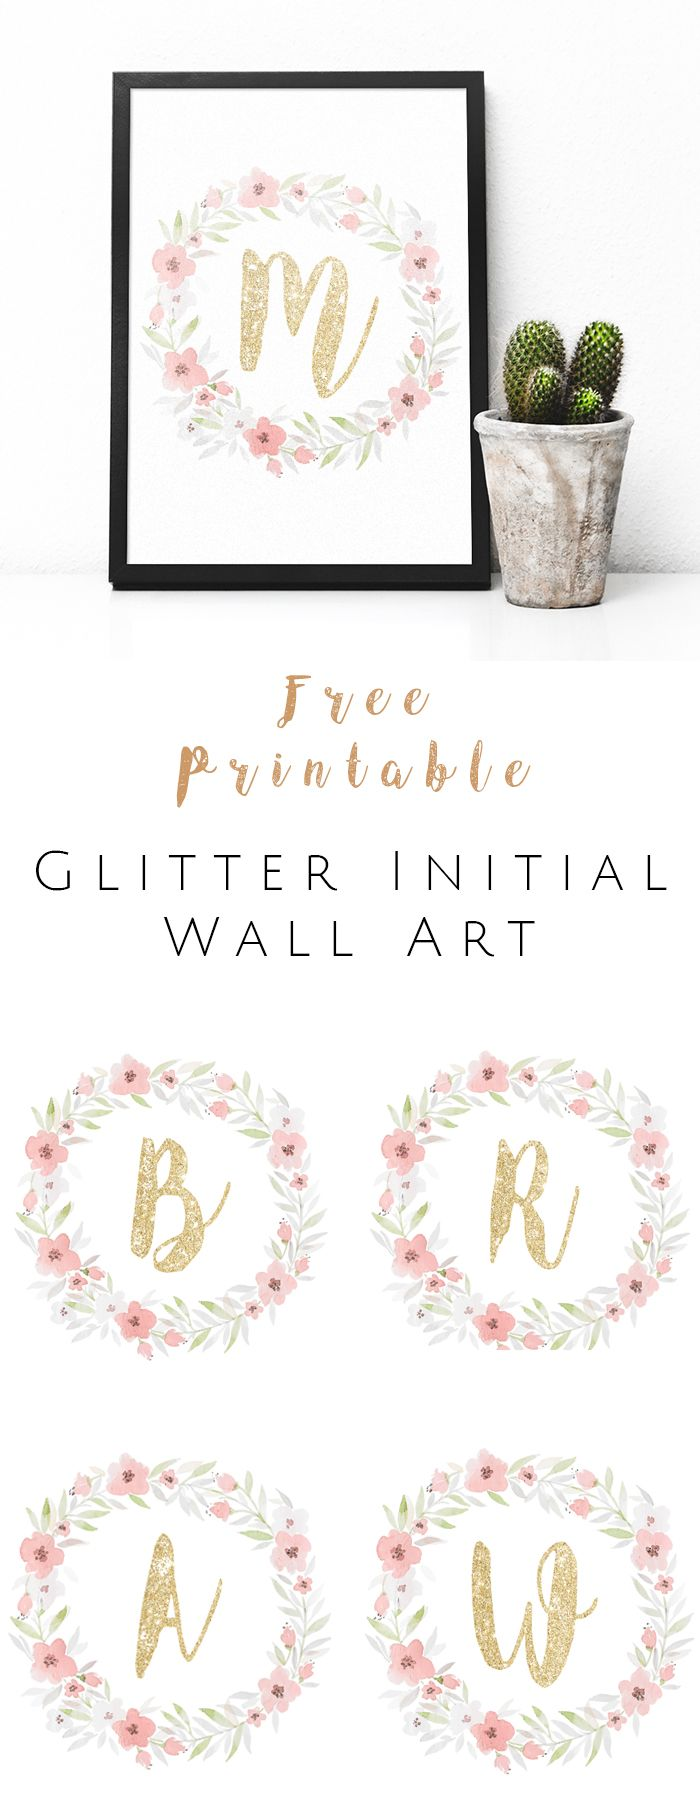 Glitter Wall Art free printable glitter initial wall art - watercolor and gold